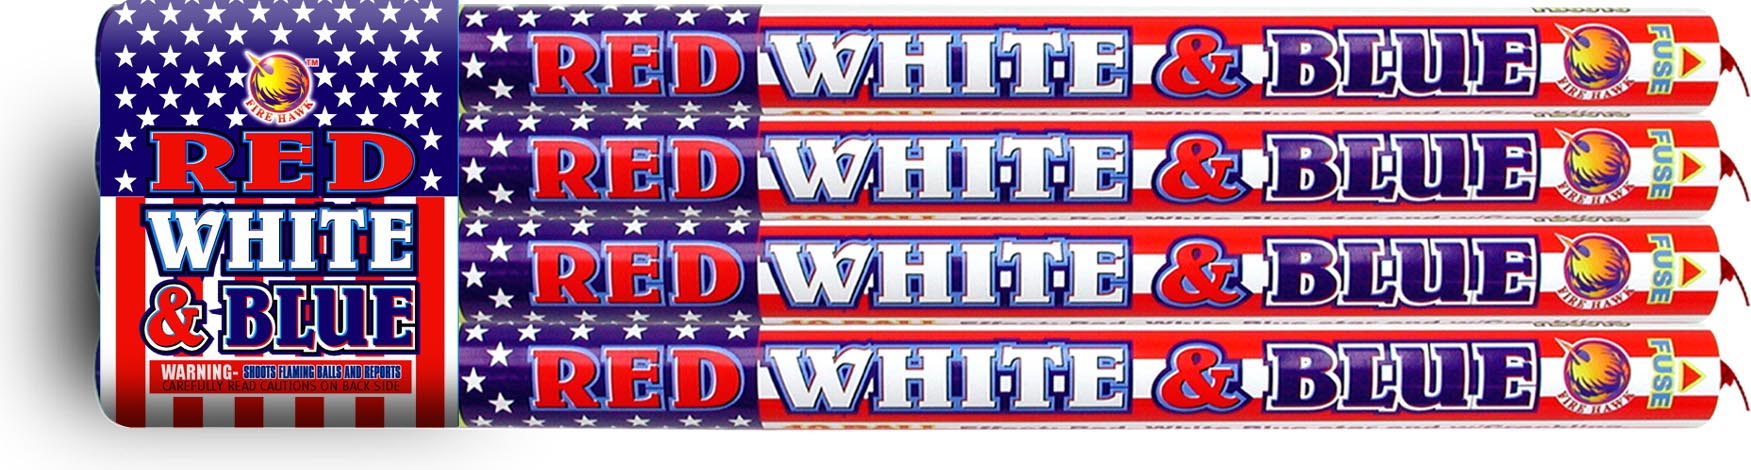 FB6016 Red White Blue Crackling